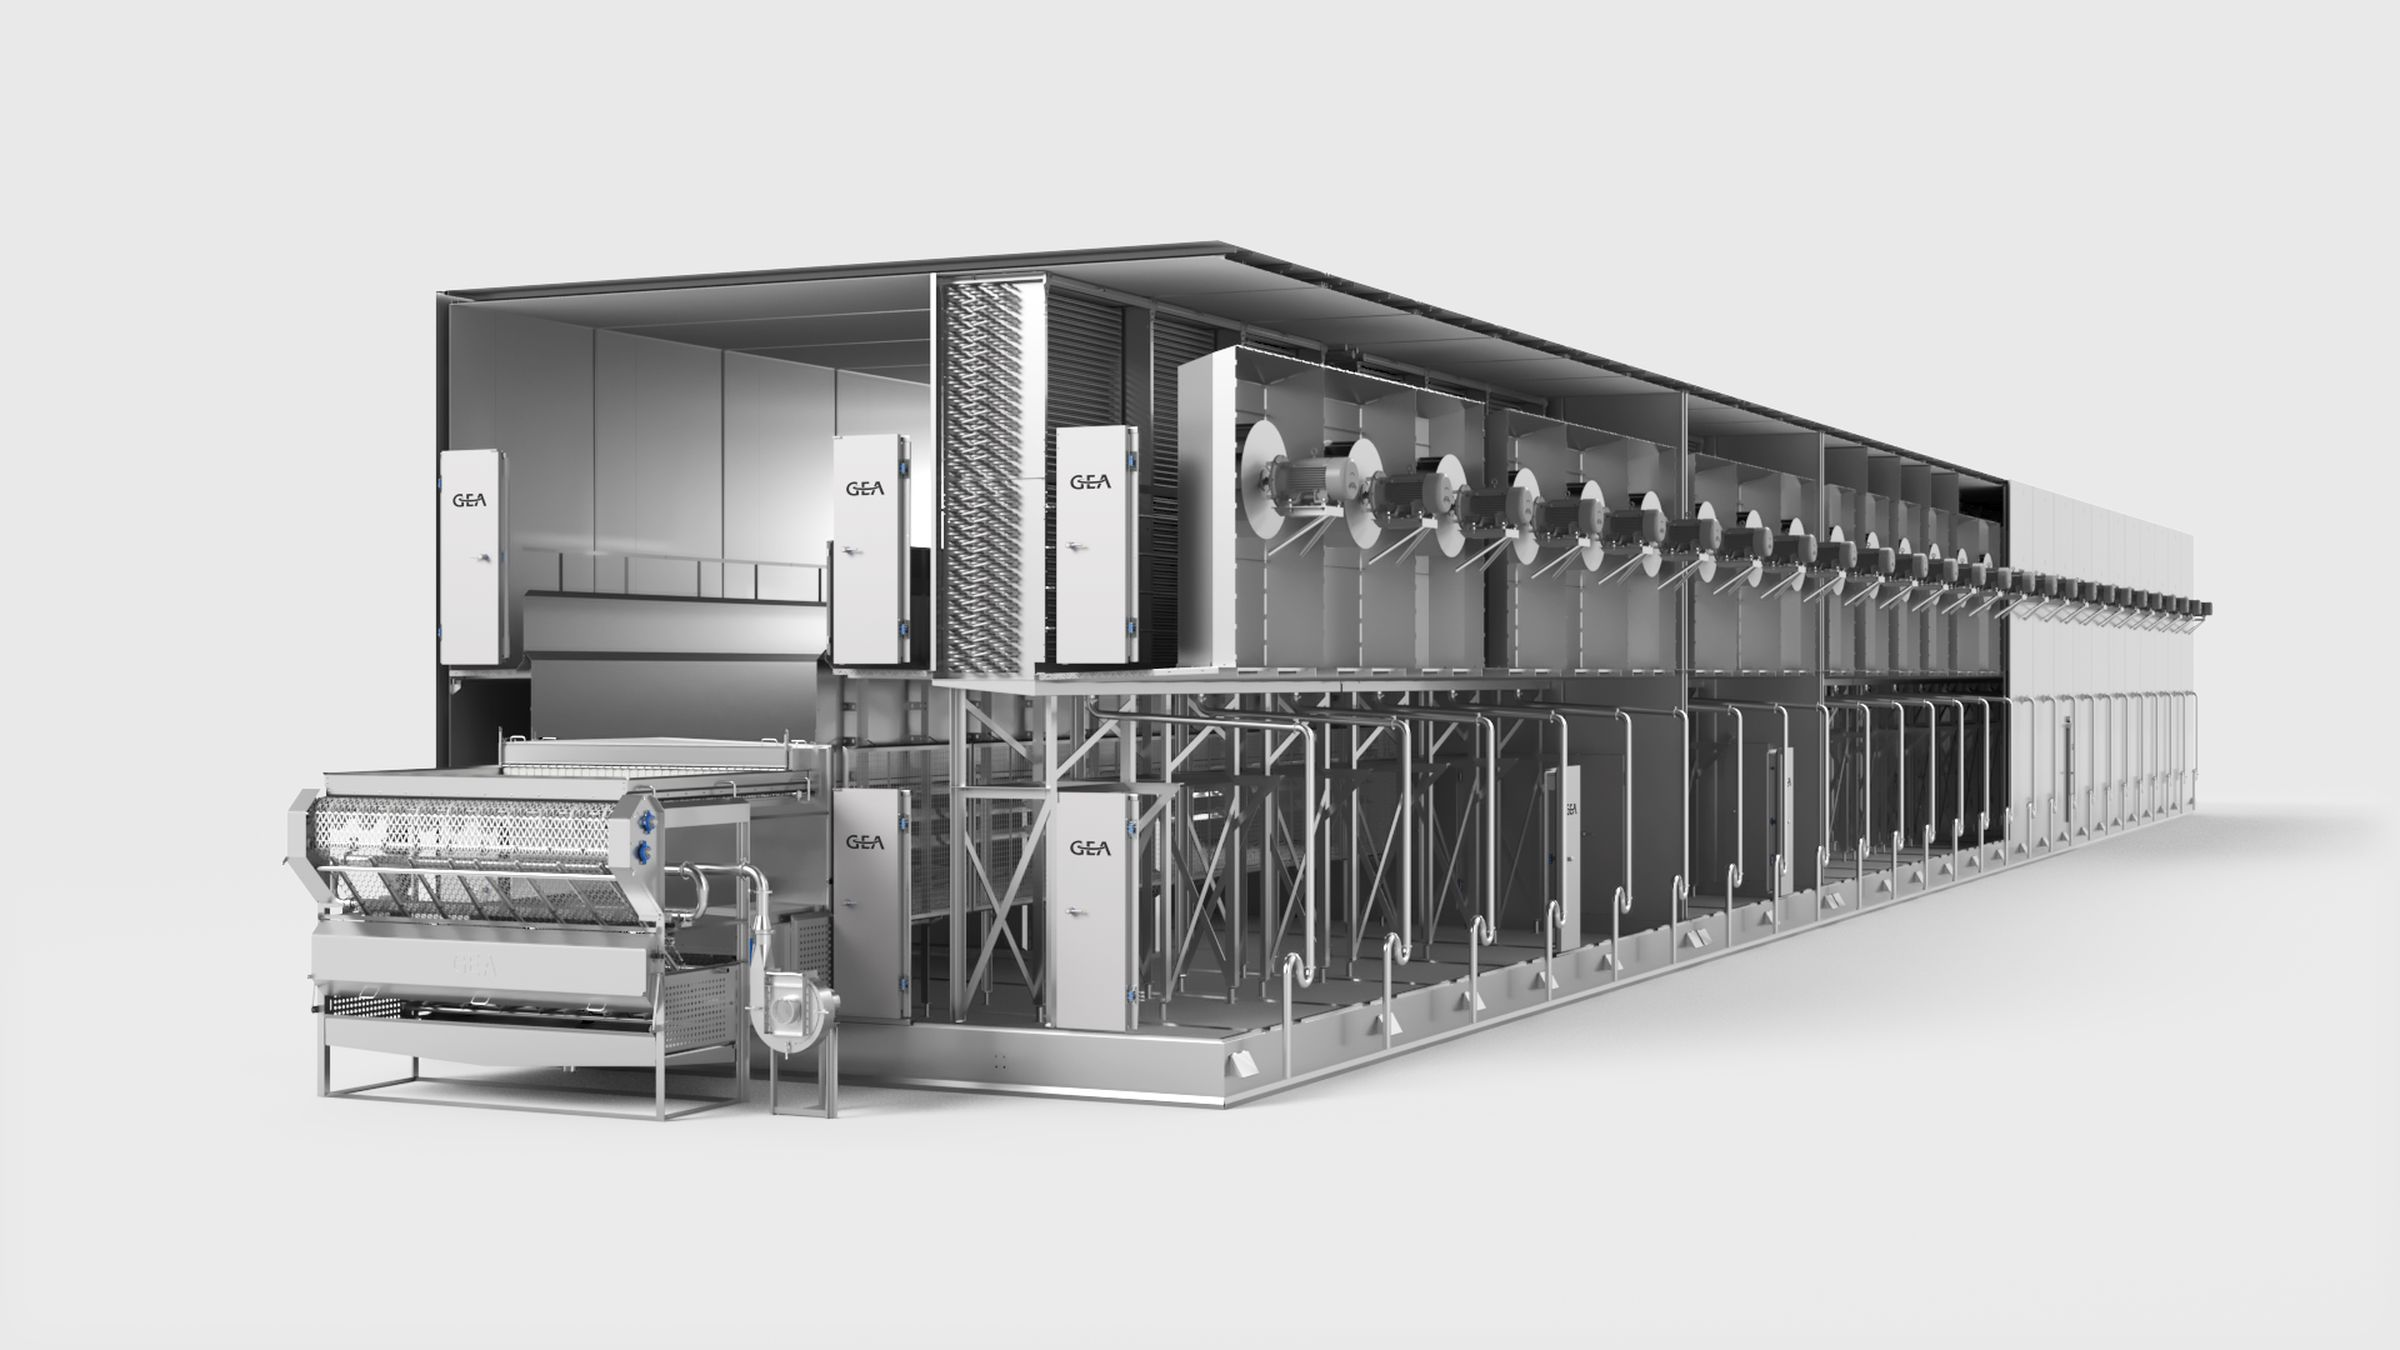 GEA AD-series tunnel freezer with external fan motors